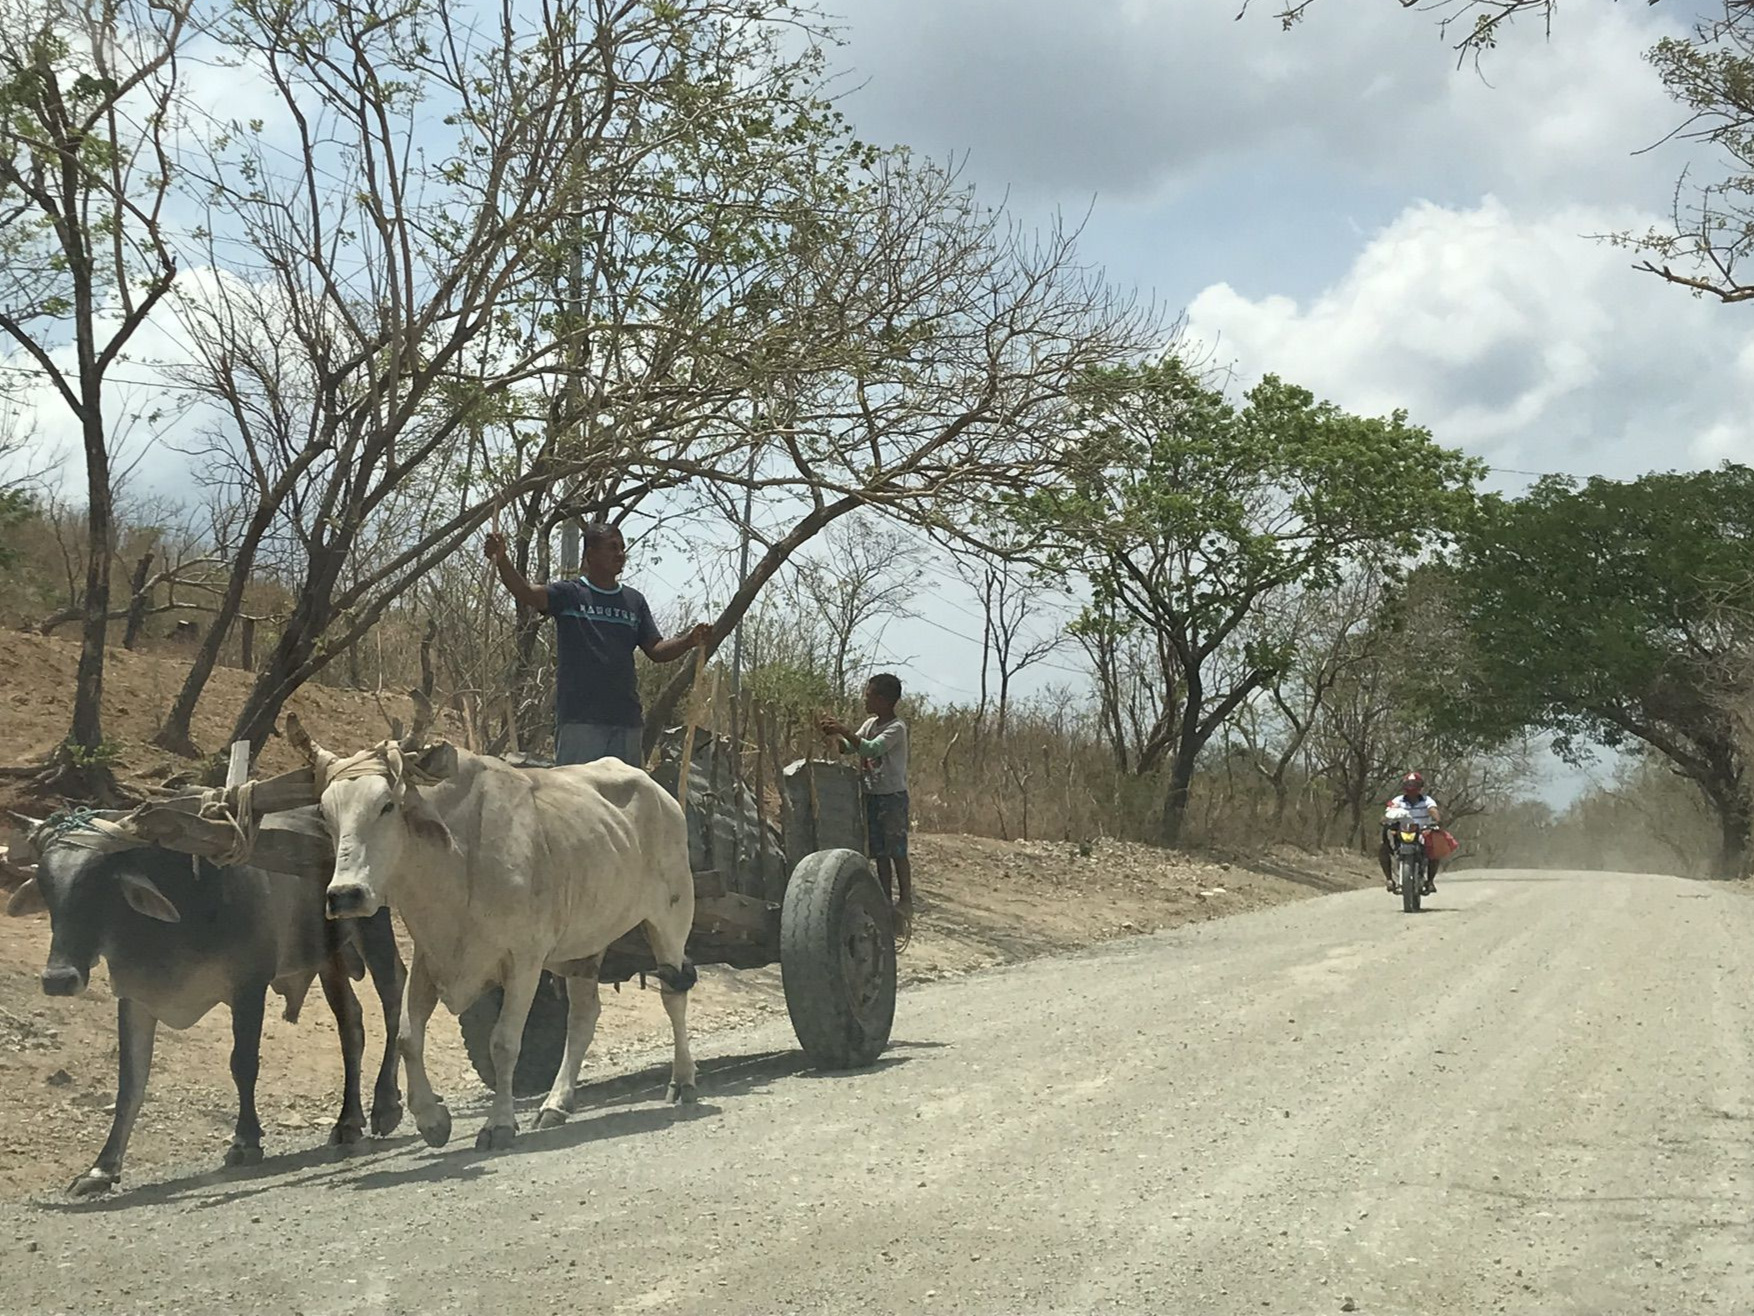 A cow-drawn cart being overtaken by a motorcycle on a dusty road is not an uncommon sight in Nicaragua or any country in Central America.